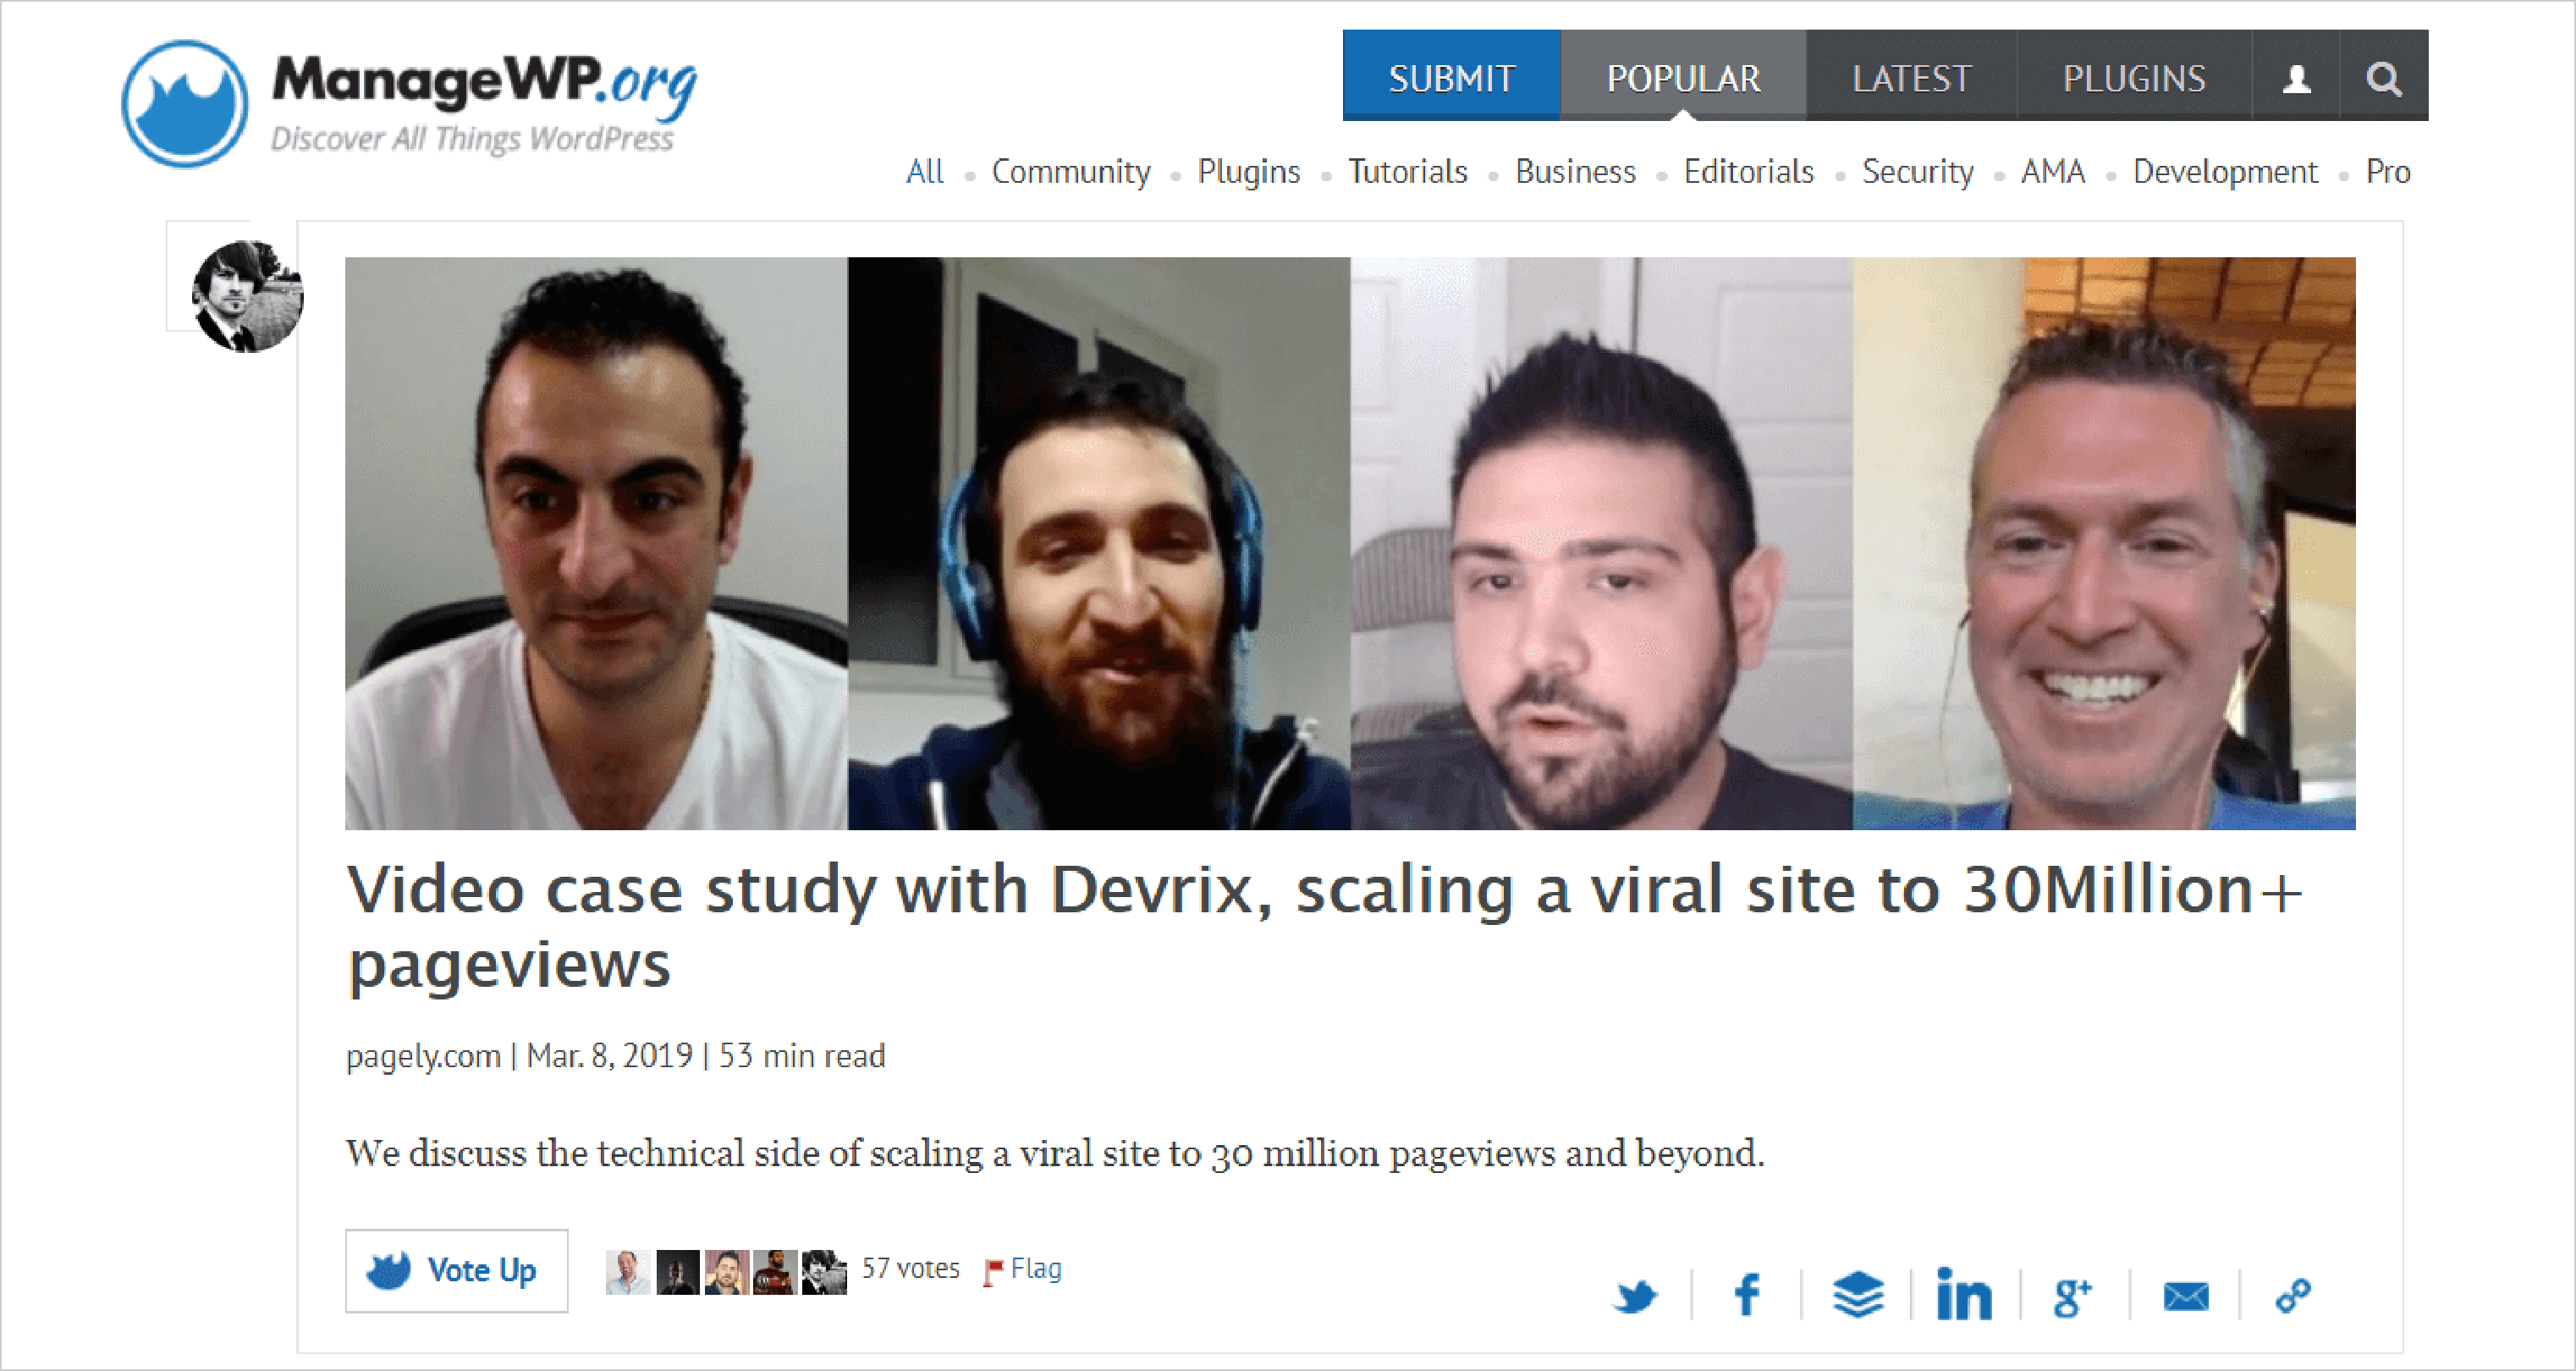 Video case study with Devrix, scaling a viral site to 30Million+ pageviews